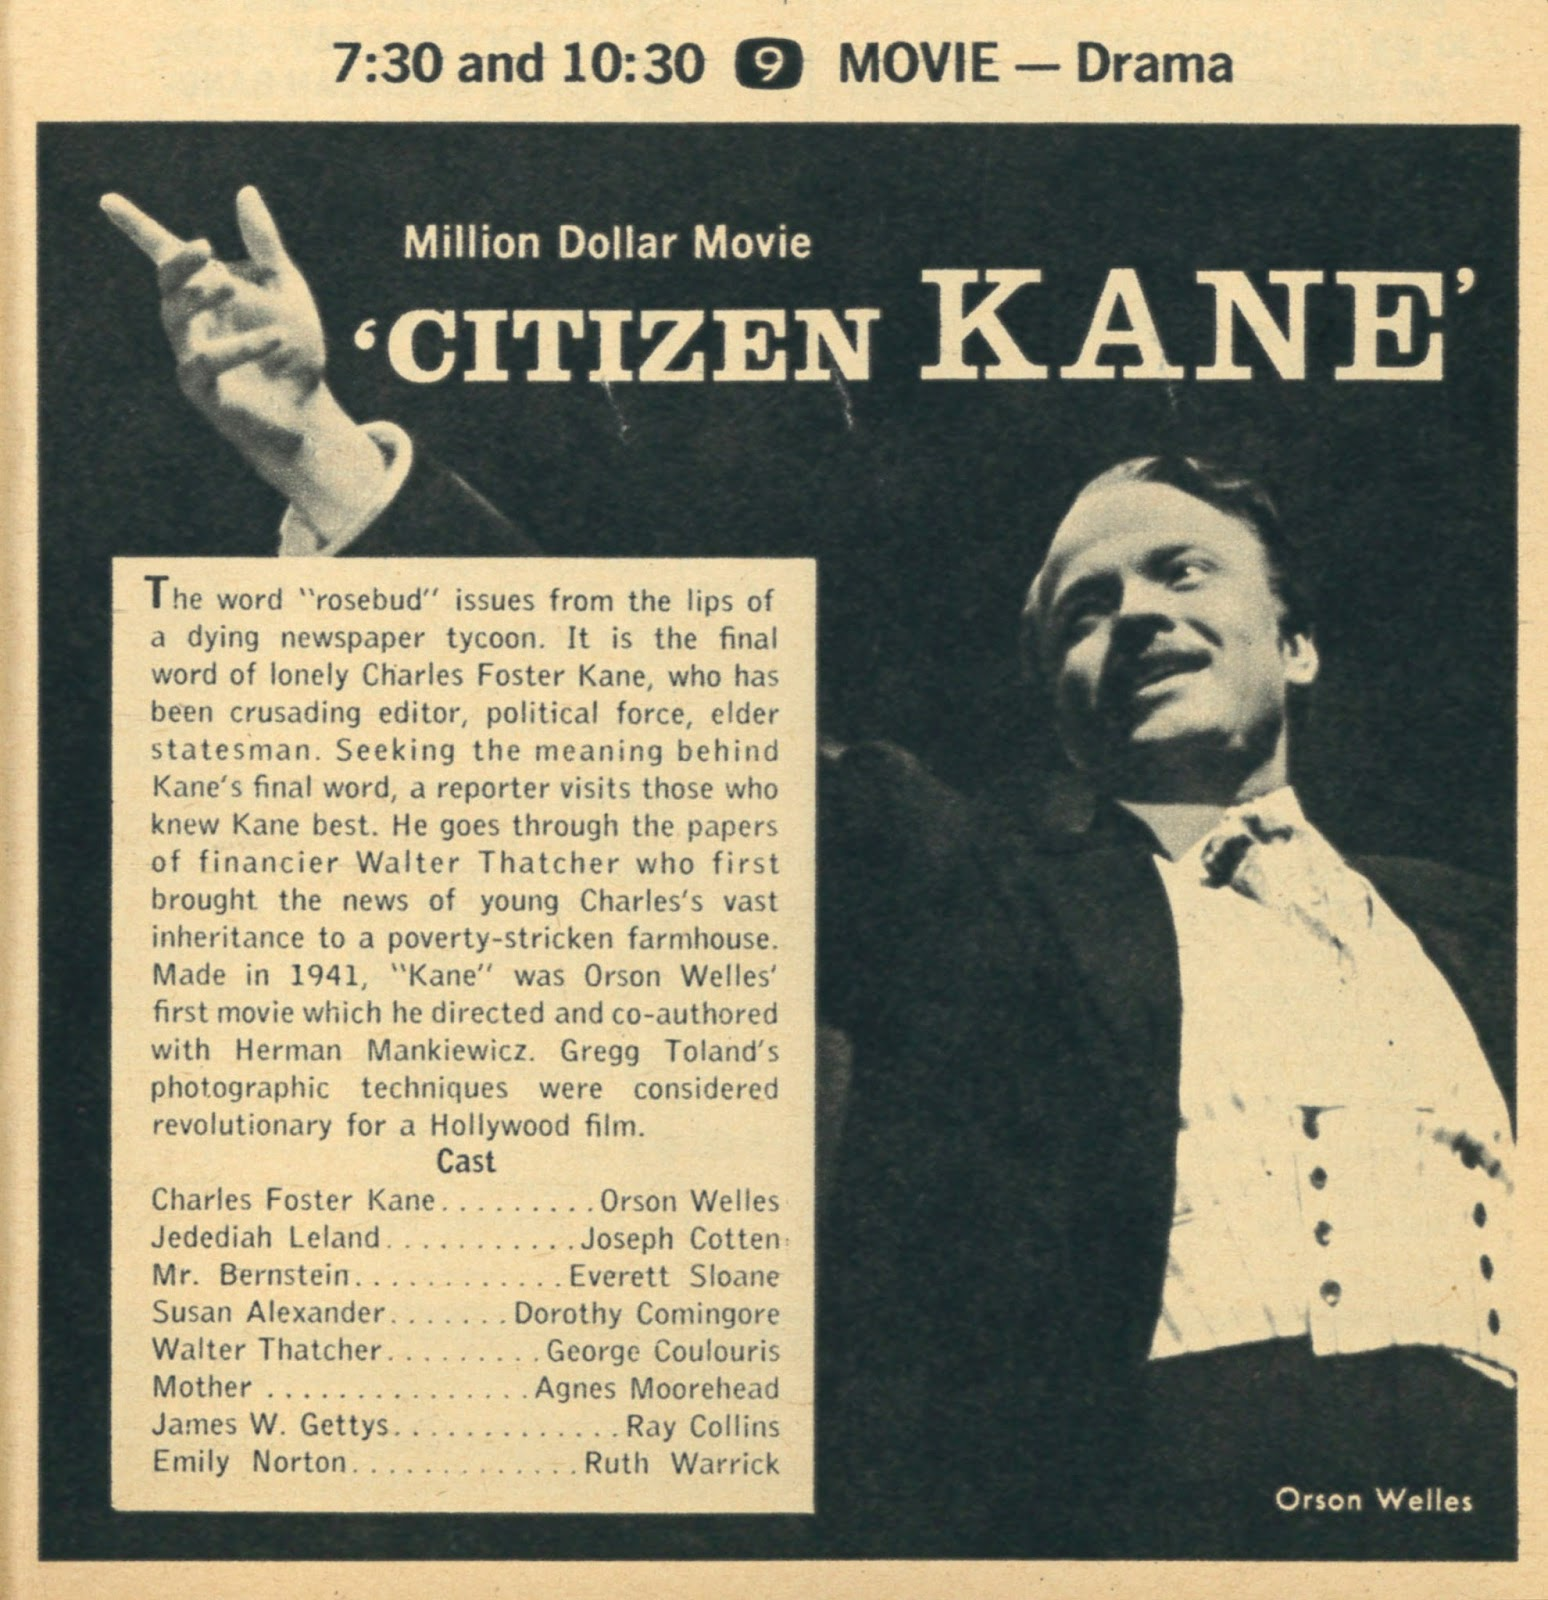 an analysis of the stylistic elements of the movie citizen kane by orson welles Meta-textuality and media effects in citizen kane directed by and starring the young orson welles the film uses many stylistic elements that were seen as.